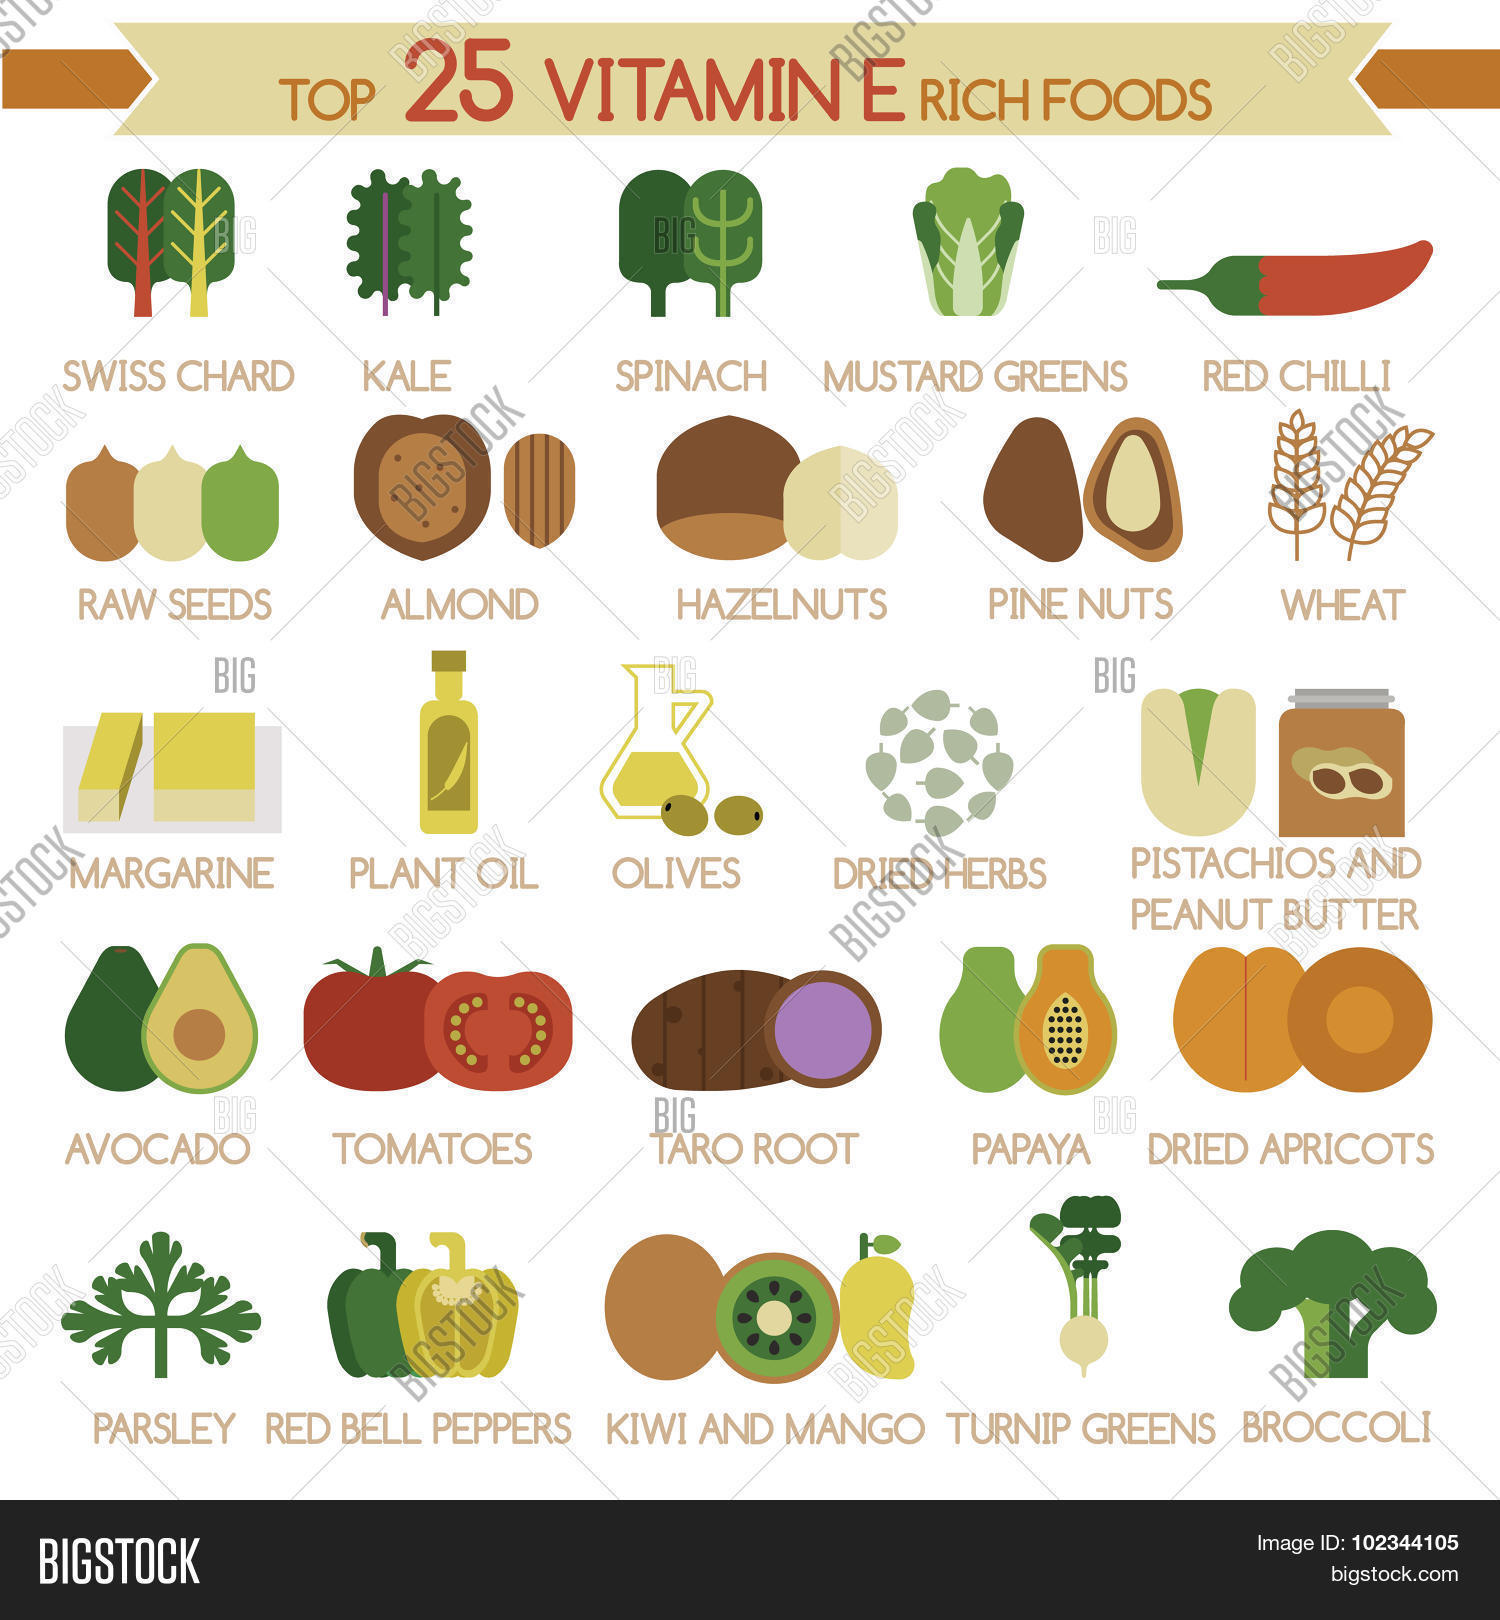 Discussion on this topic: Top 25 Vitamin A Rich Foods, top-25-vitamin-a-rich-foods/